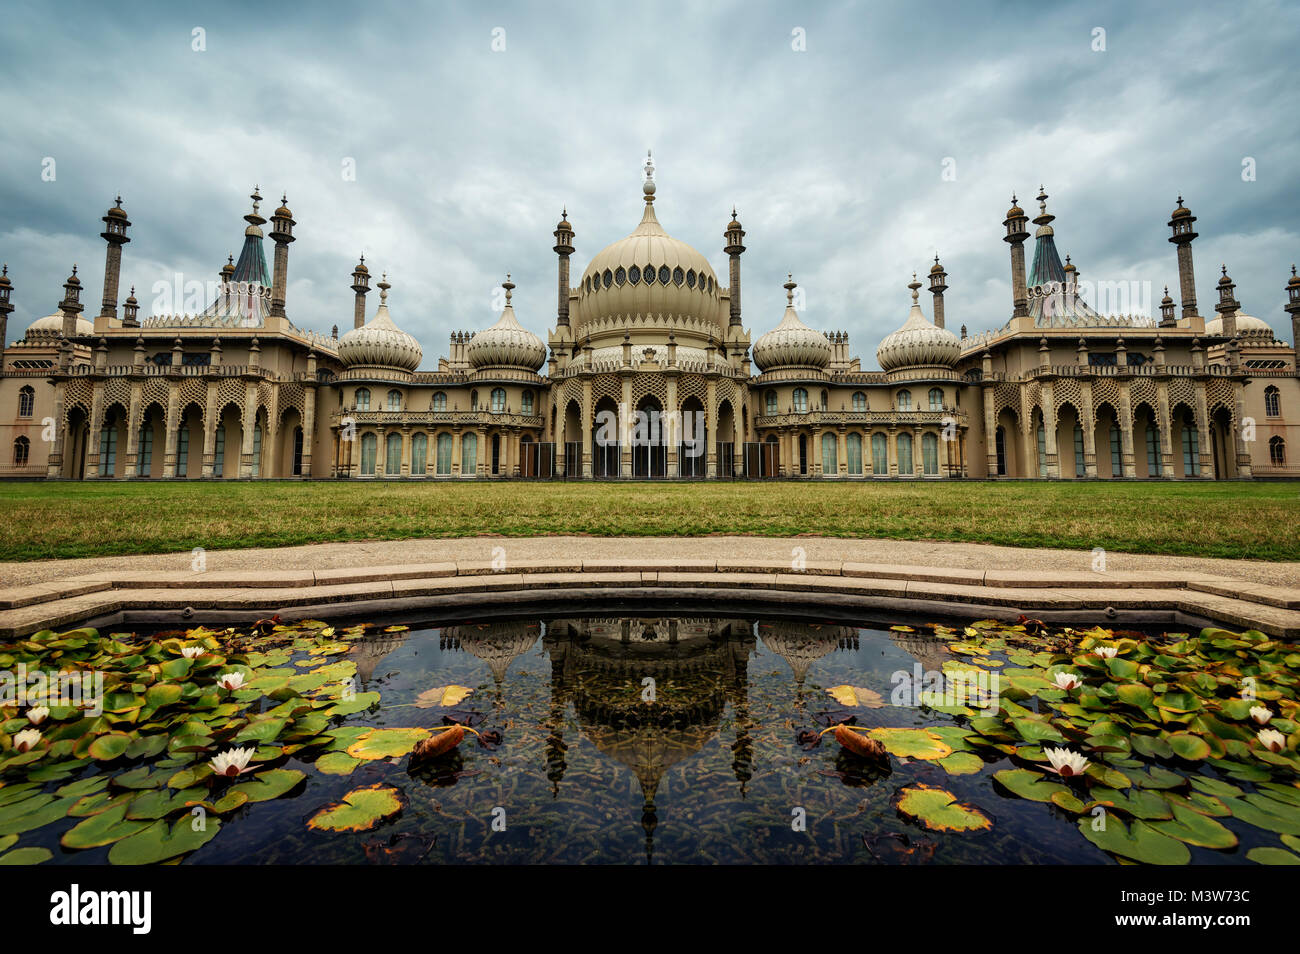 Brighton Pavillion, UK taken in 2015 - Stock Image